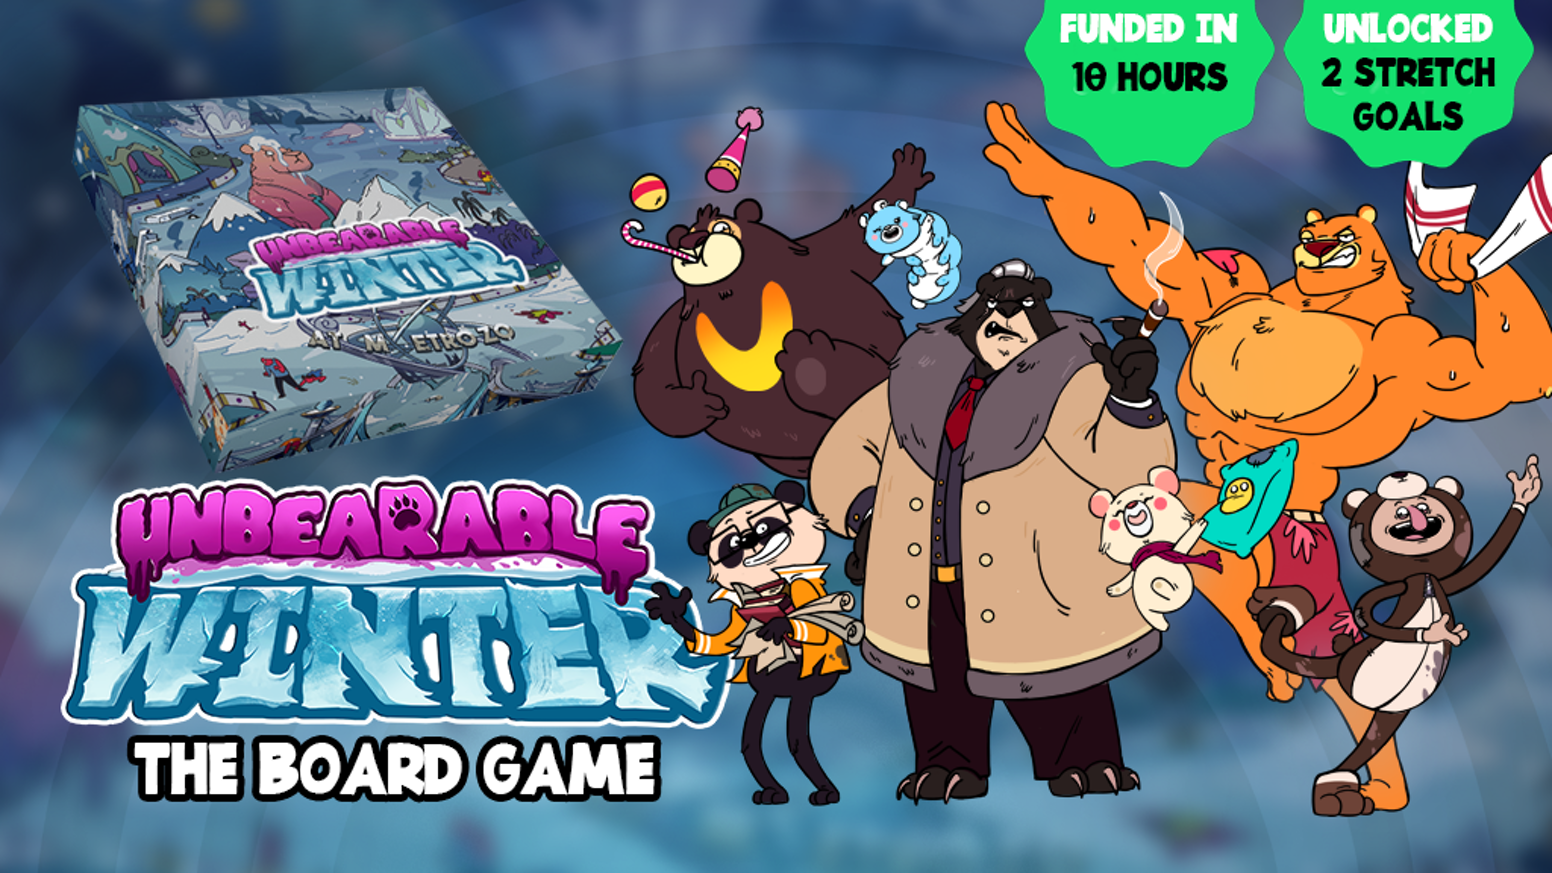 A furr-rightening survival board game of cute bears and cruel betrayal. The nuclear winter has arrived, fend for your lives!